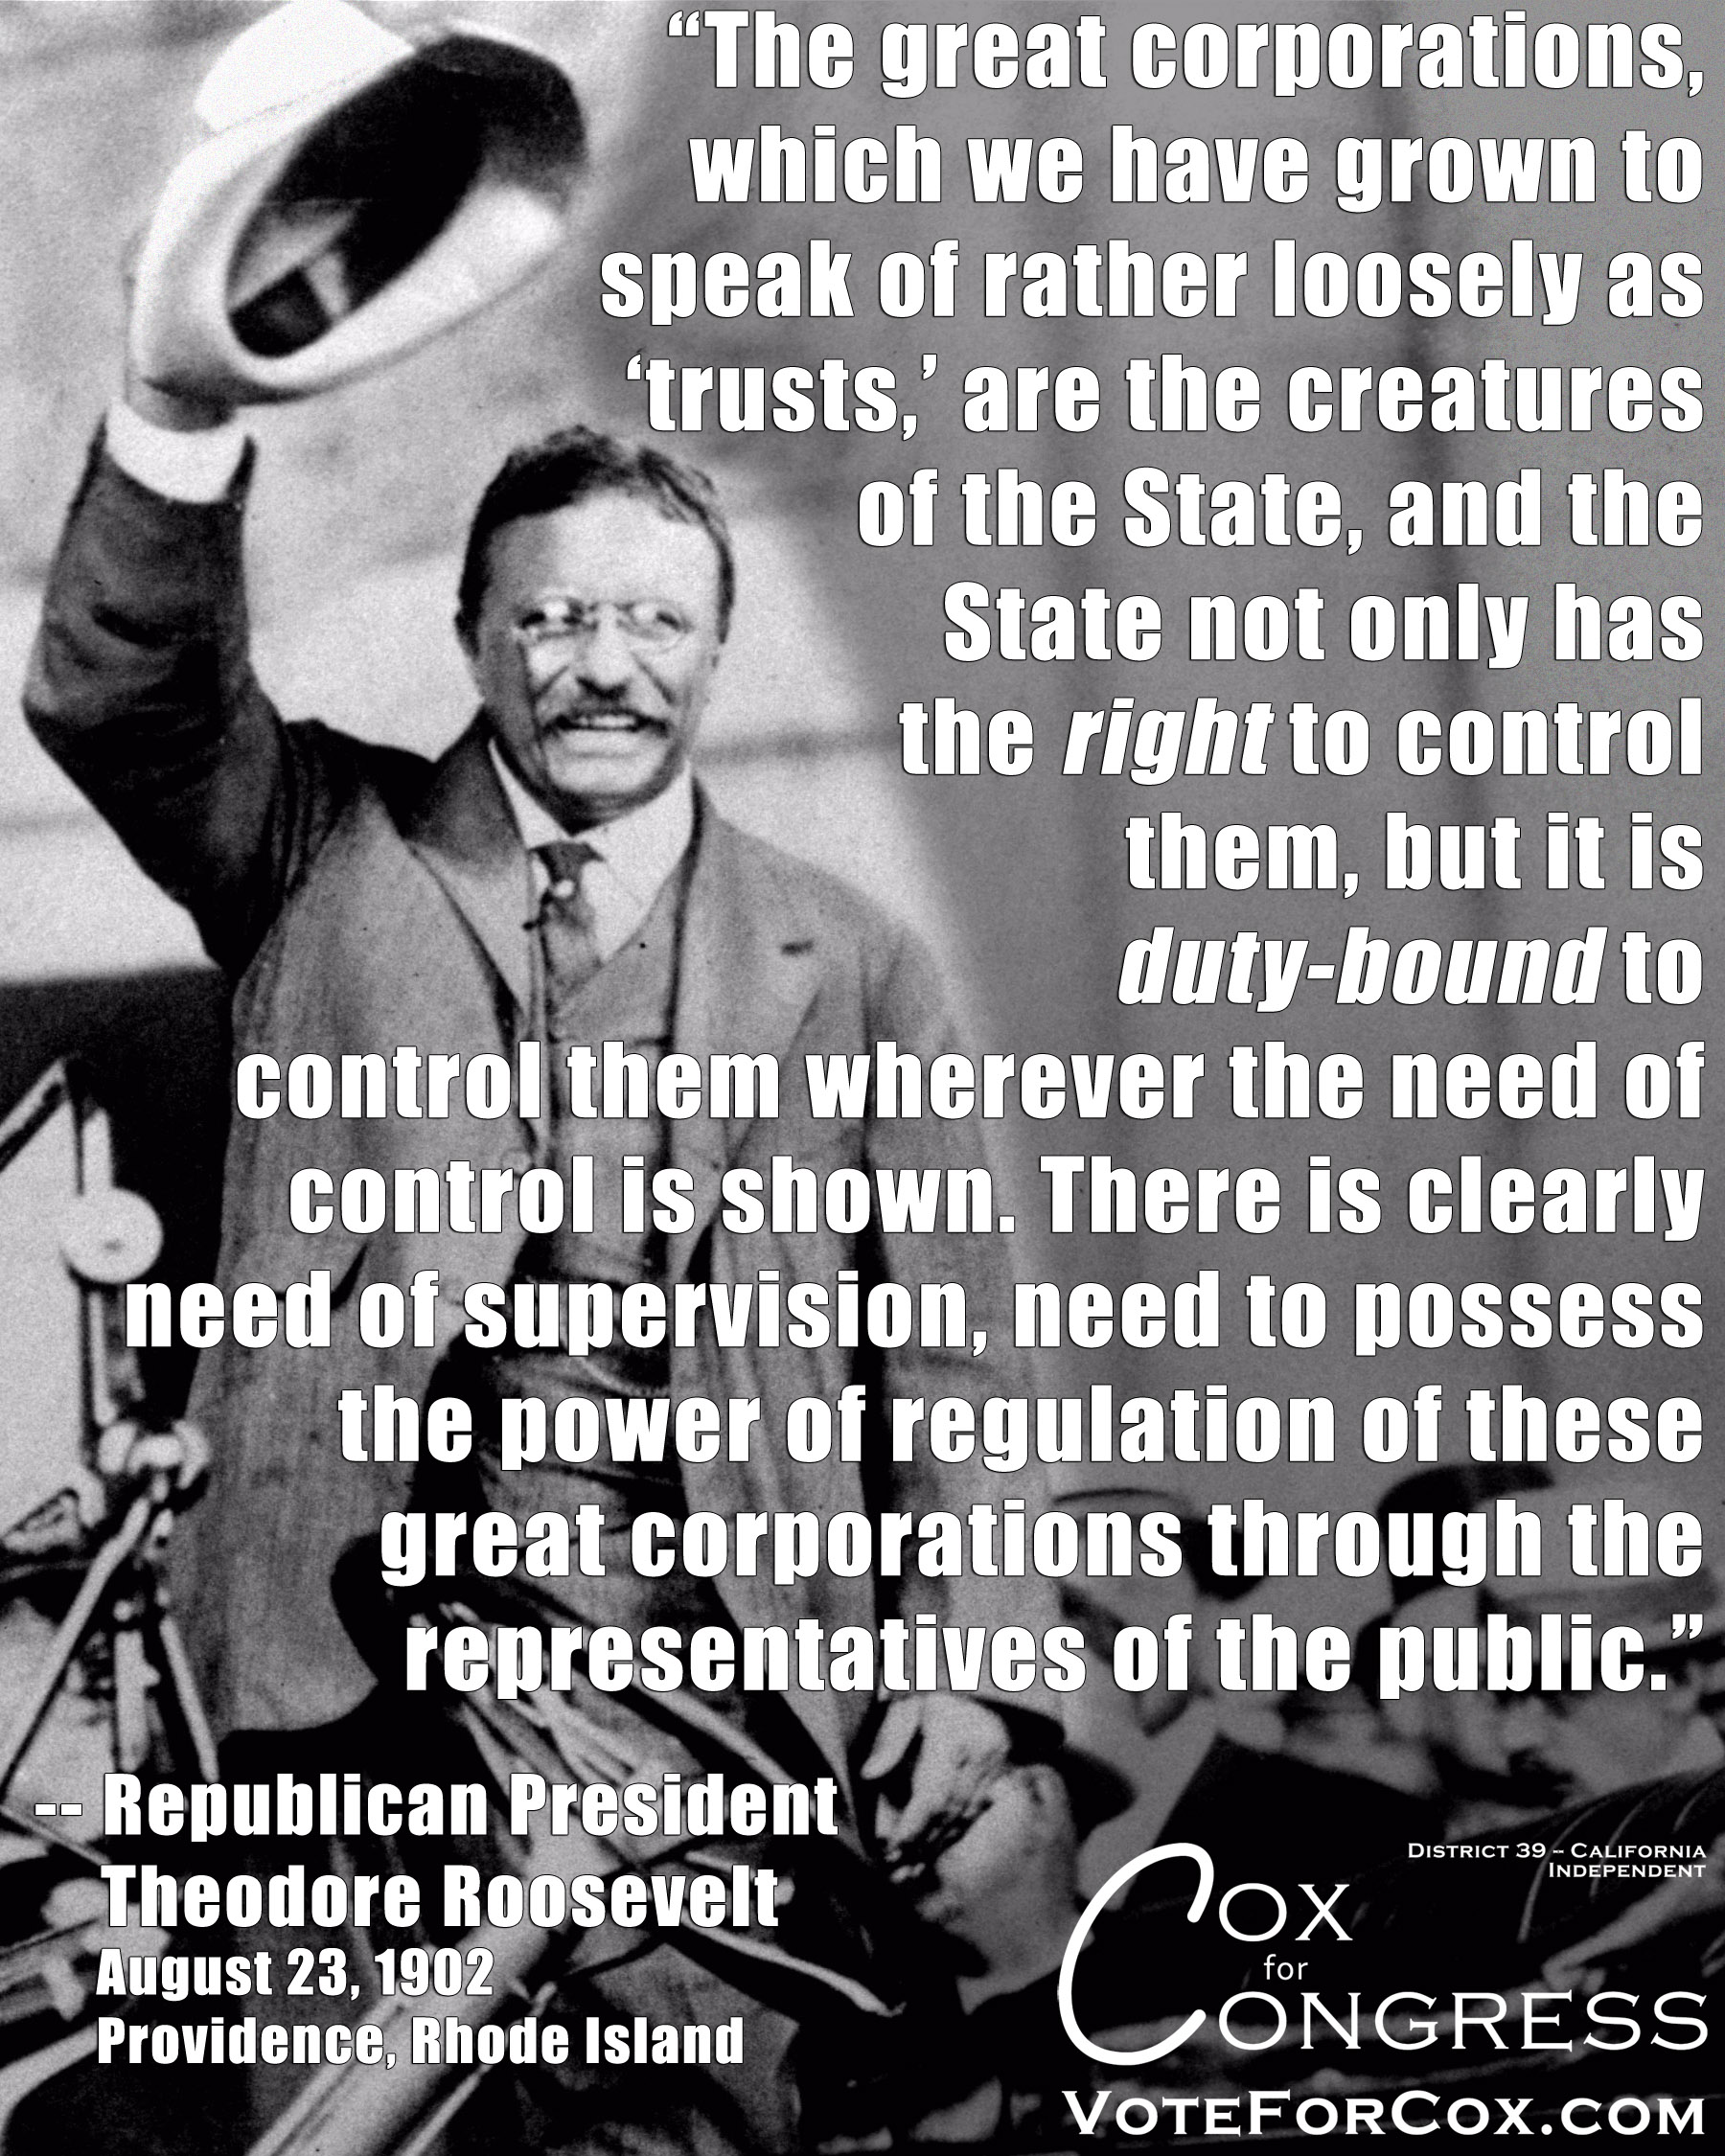 Teddy Roosevelt was the principal politician fighting against corporate greed during the last Gilded Age. We're in a new Gilded Age today.